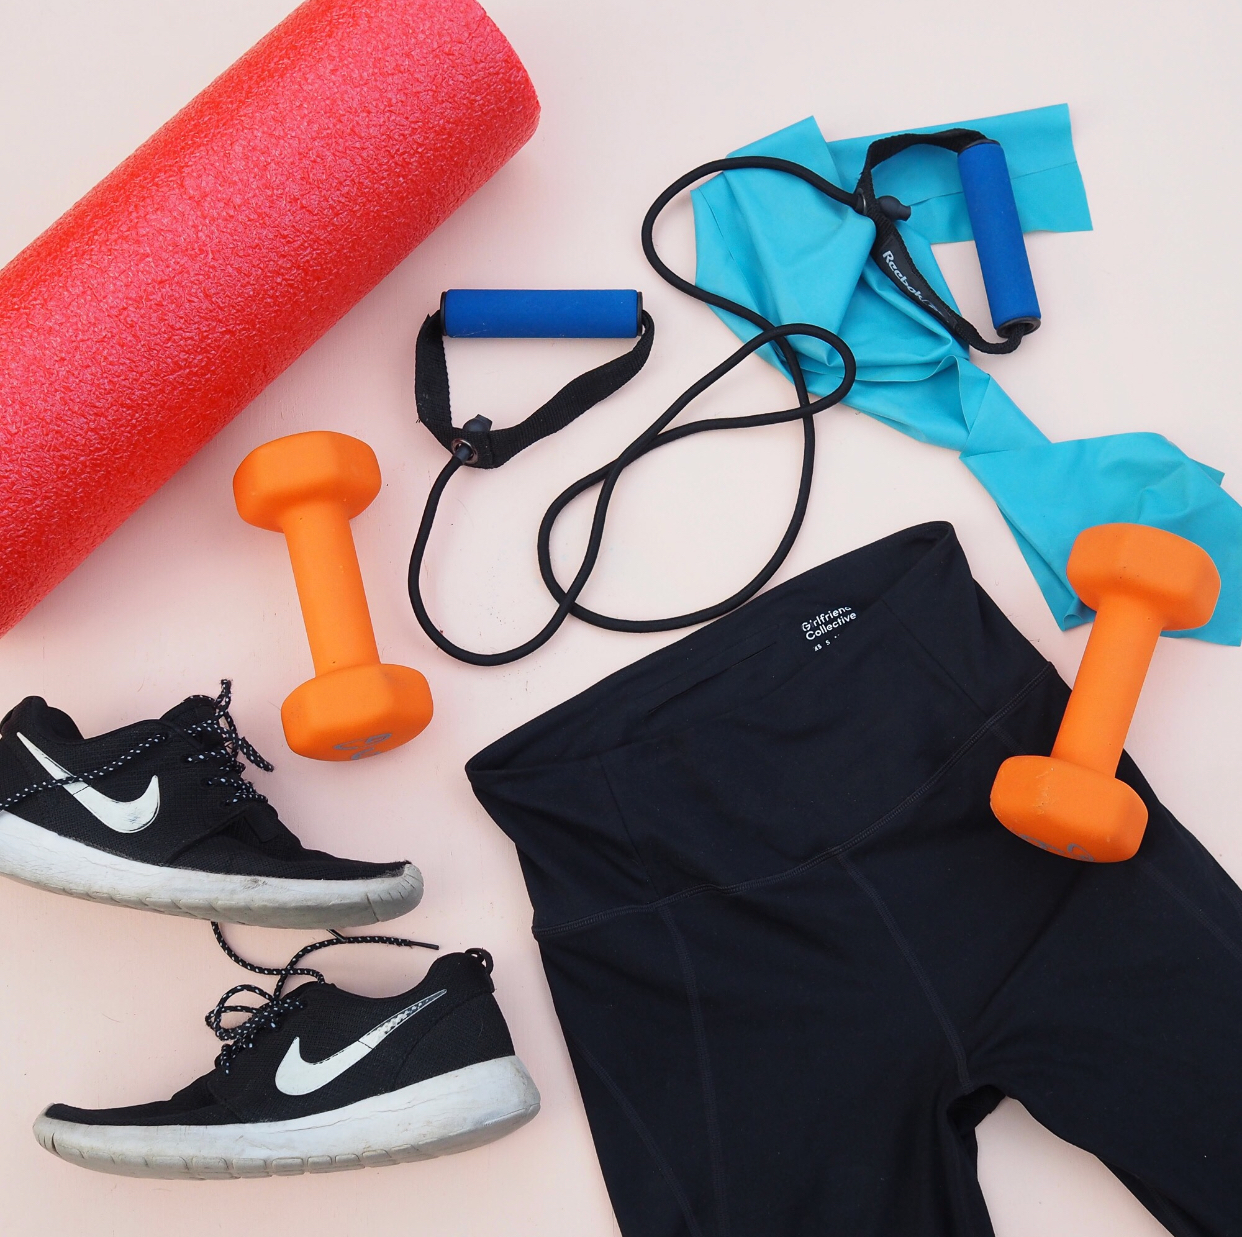 Our Favorite At-Home Workout Equipment to Get You Started